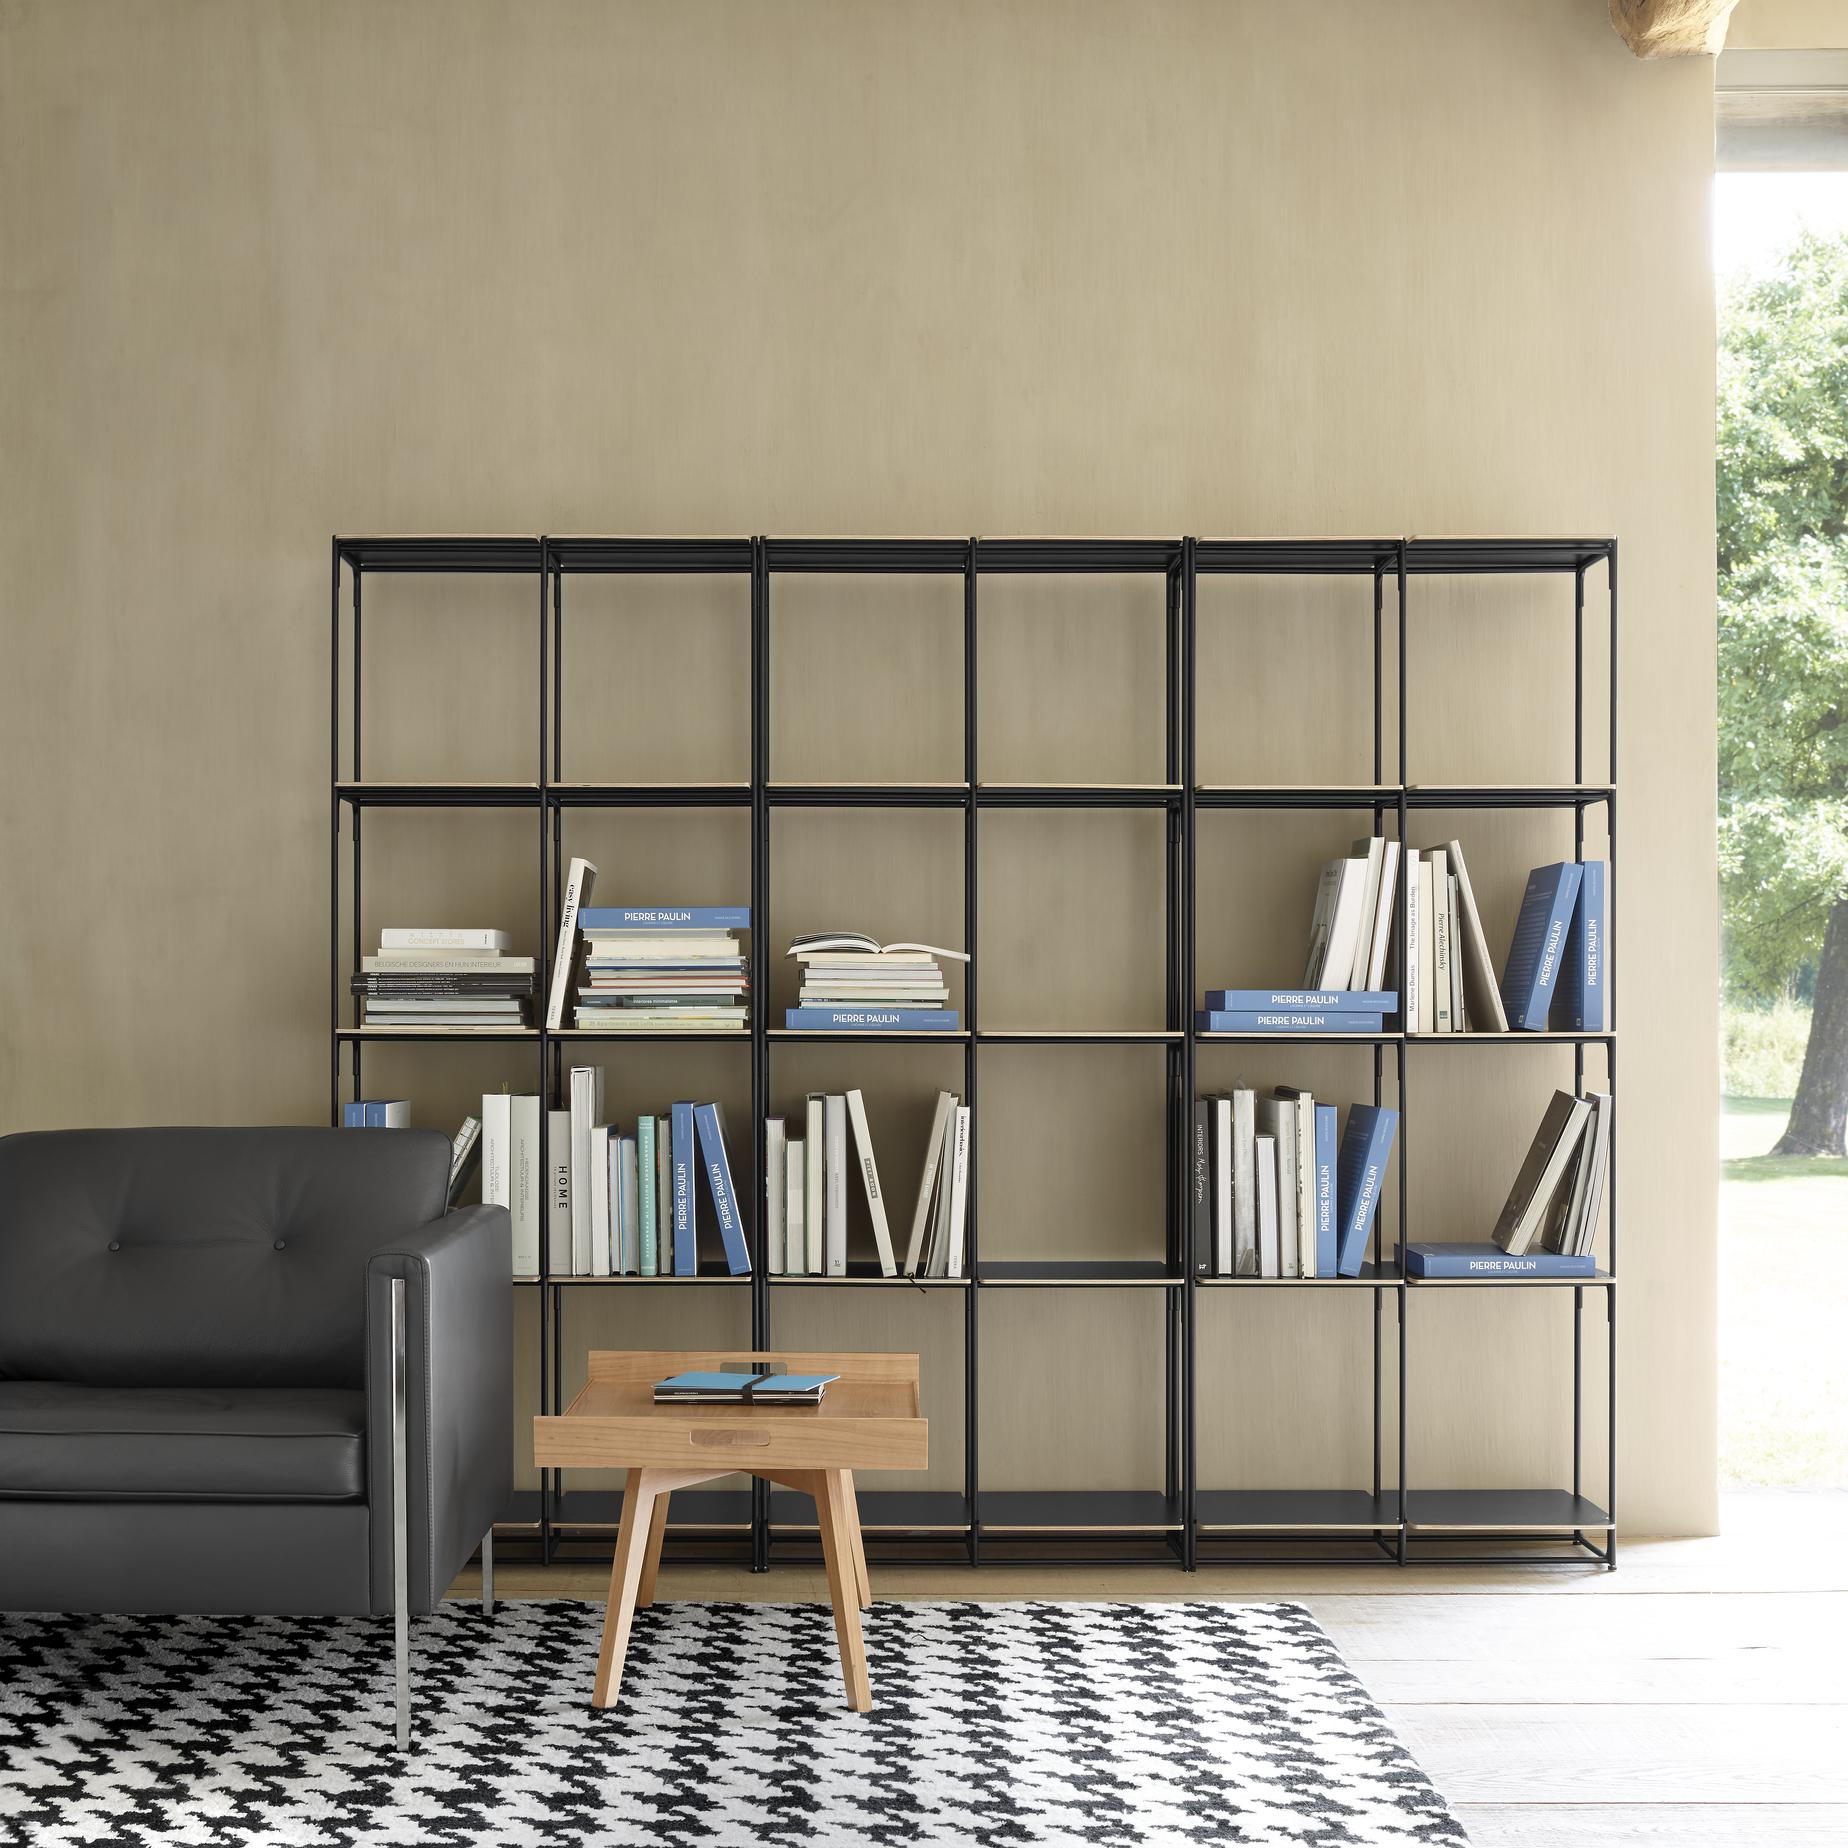 la bibliotheque fil bookcases shelving from designer. Black Bedroom Furniture Sets. Home Design Ideas